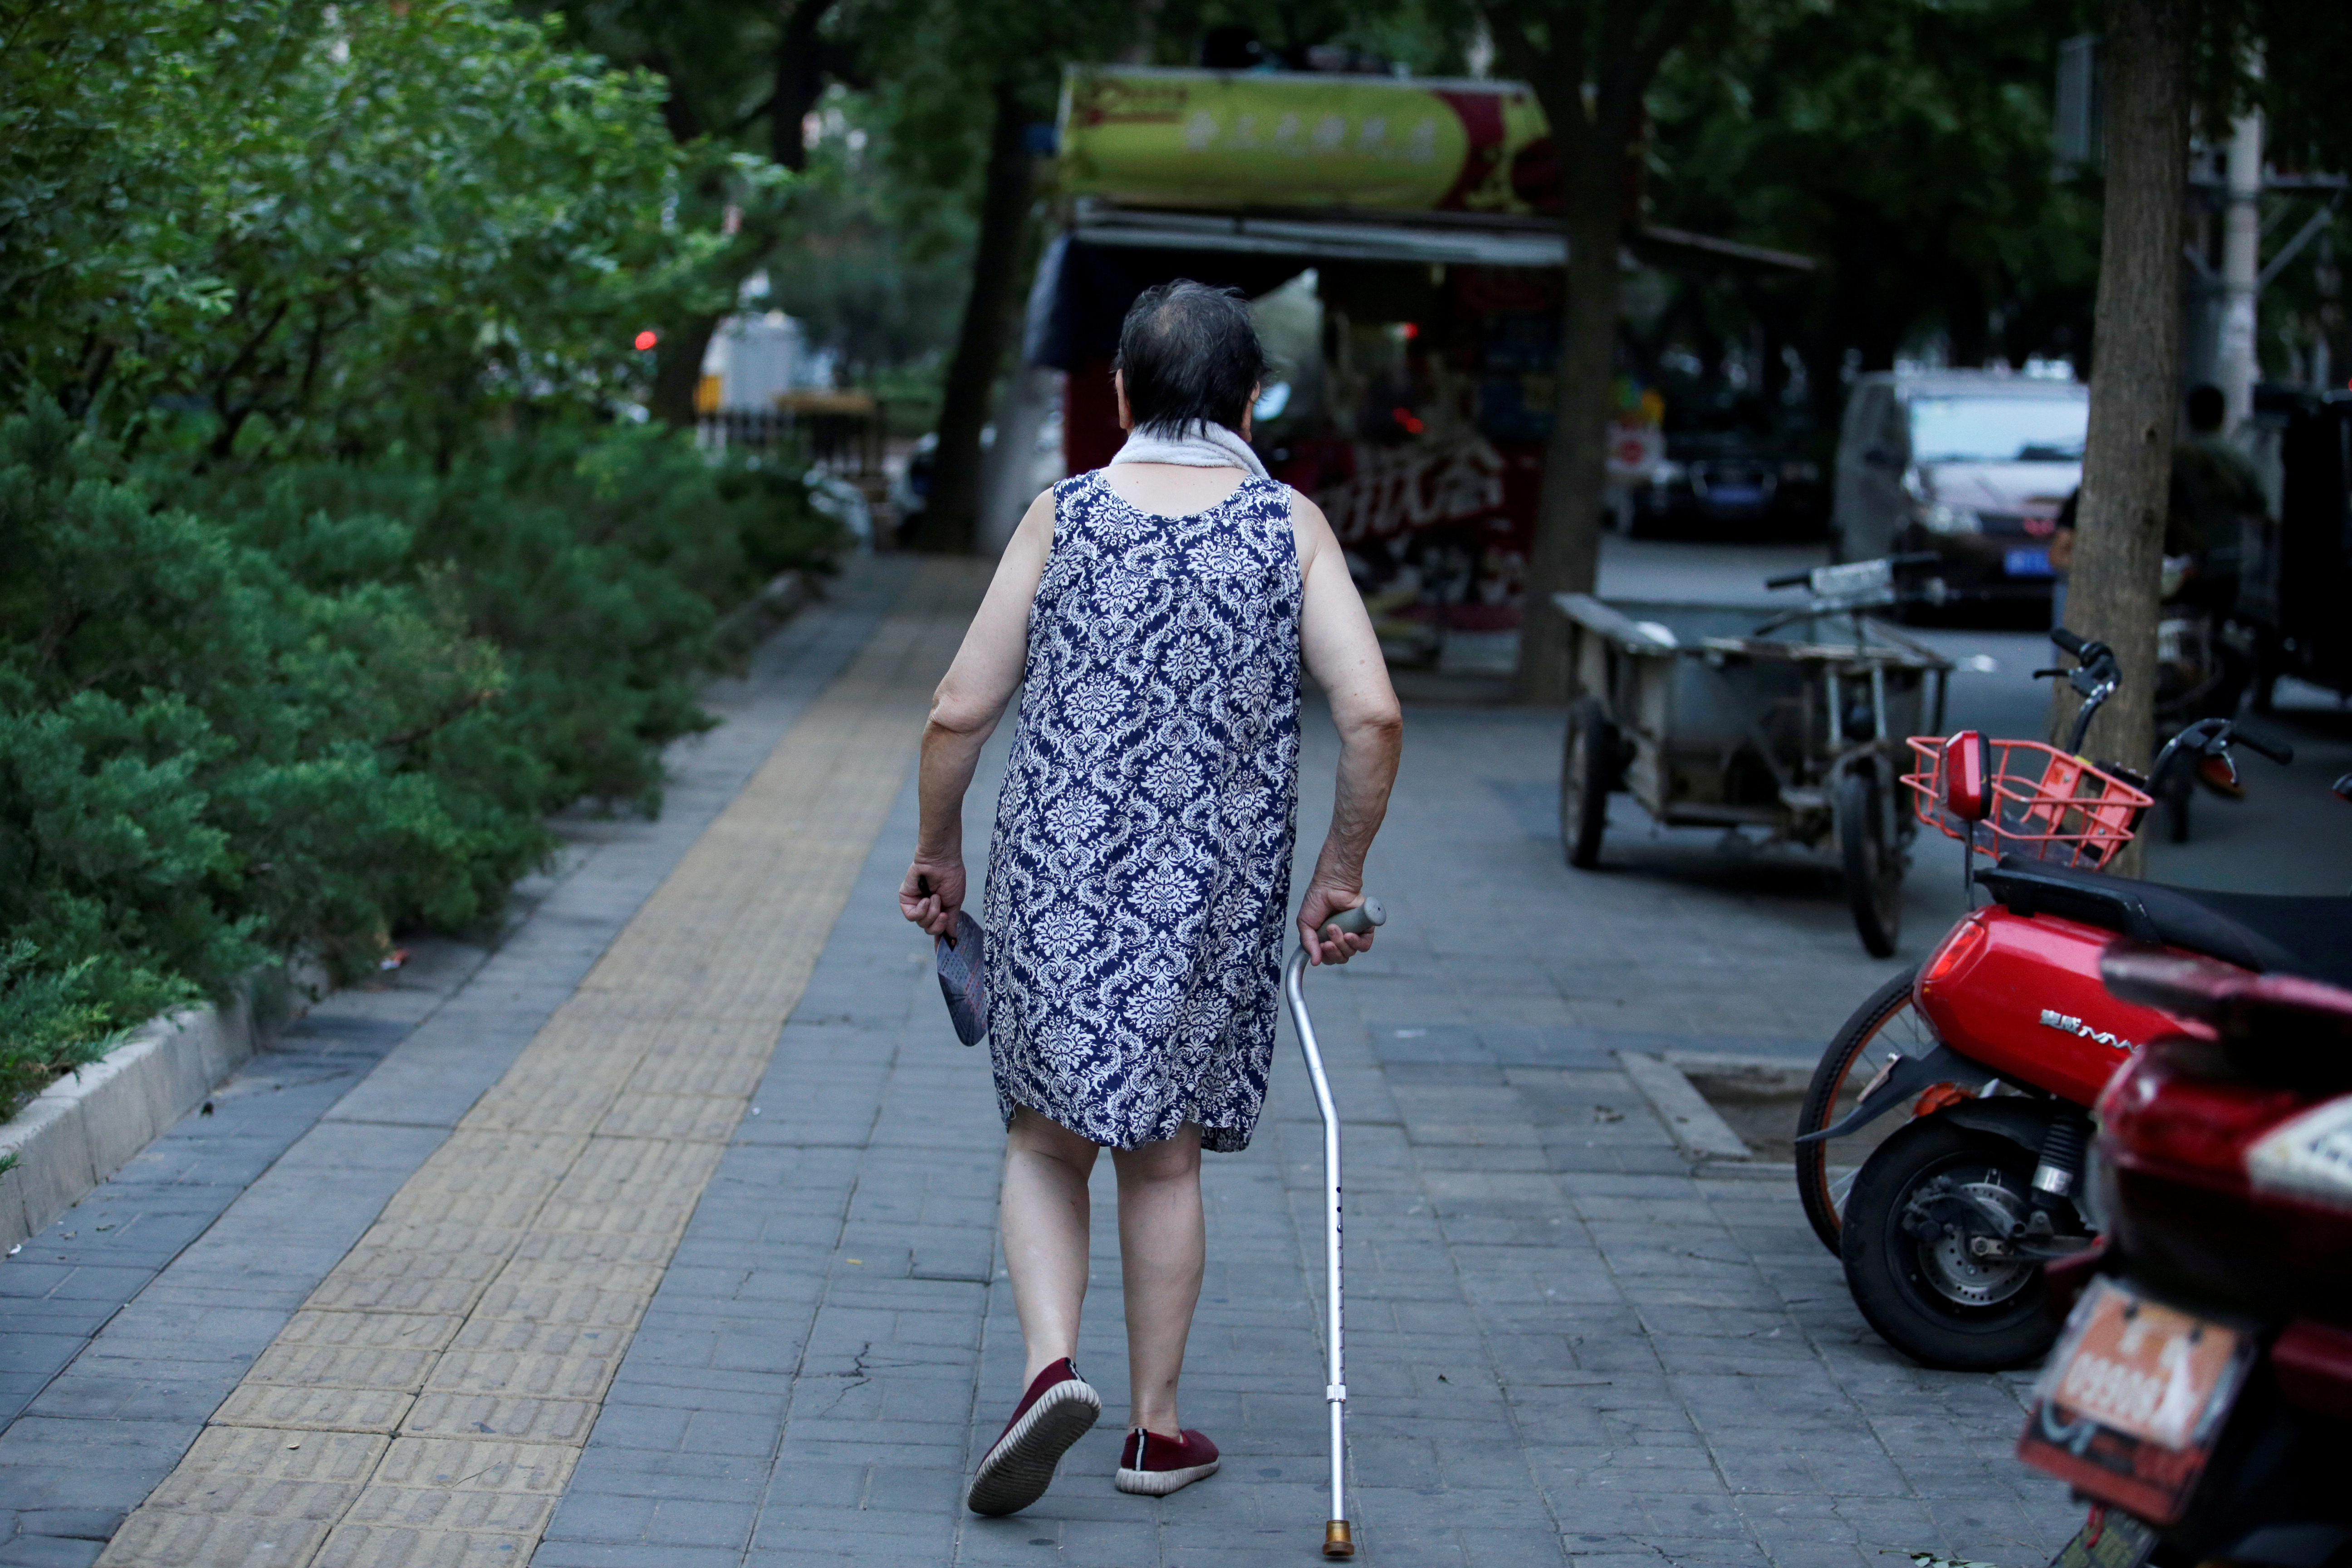 China seeks to boost certified elderly caregivers by 2 million